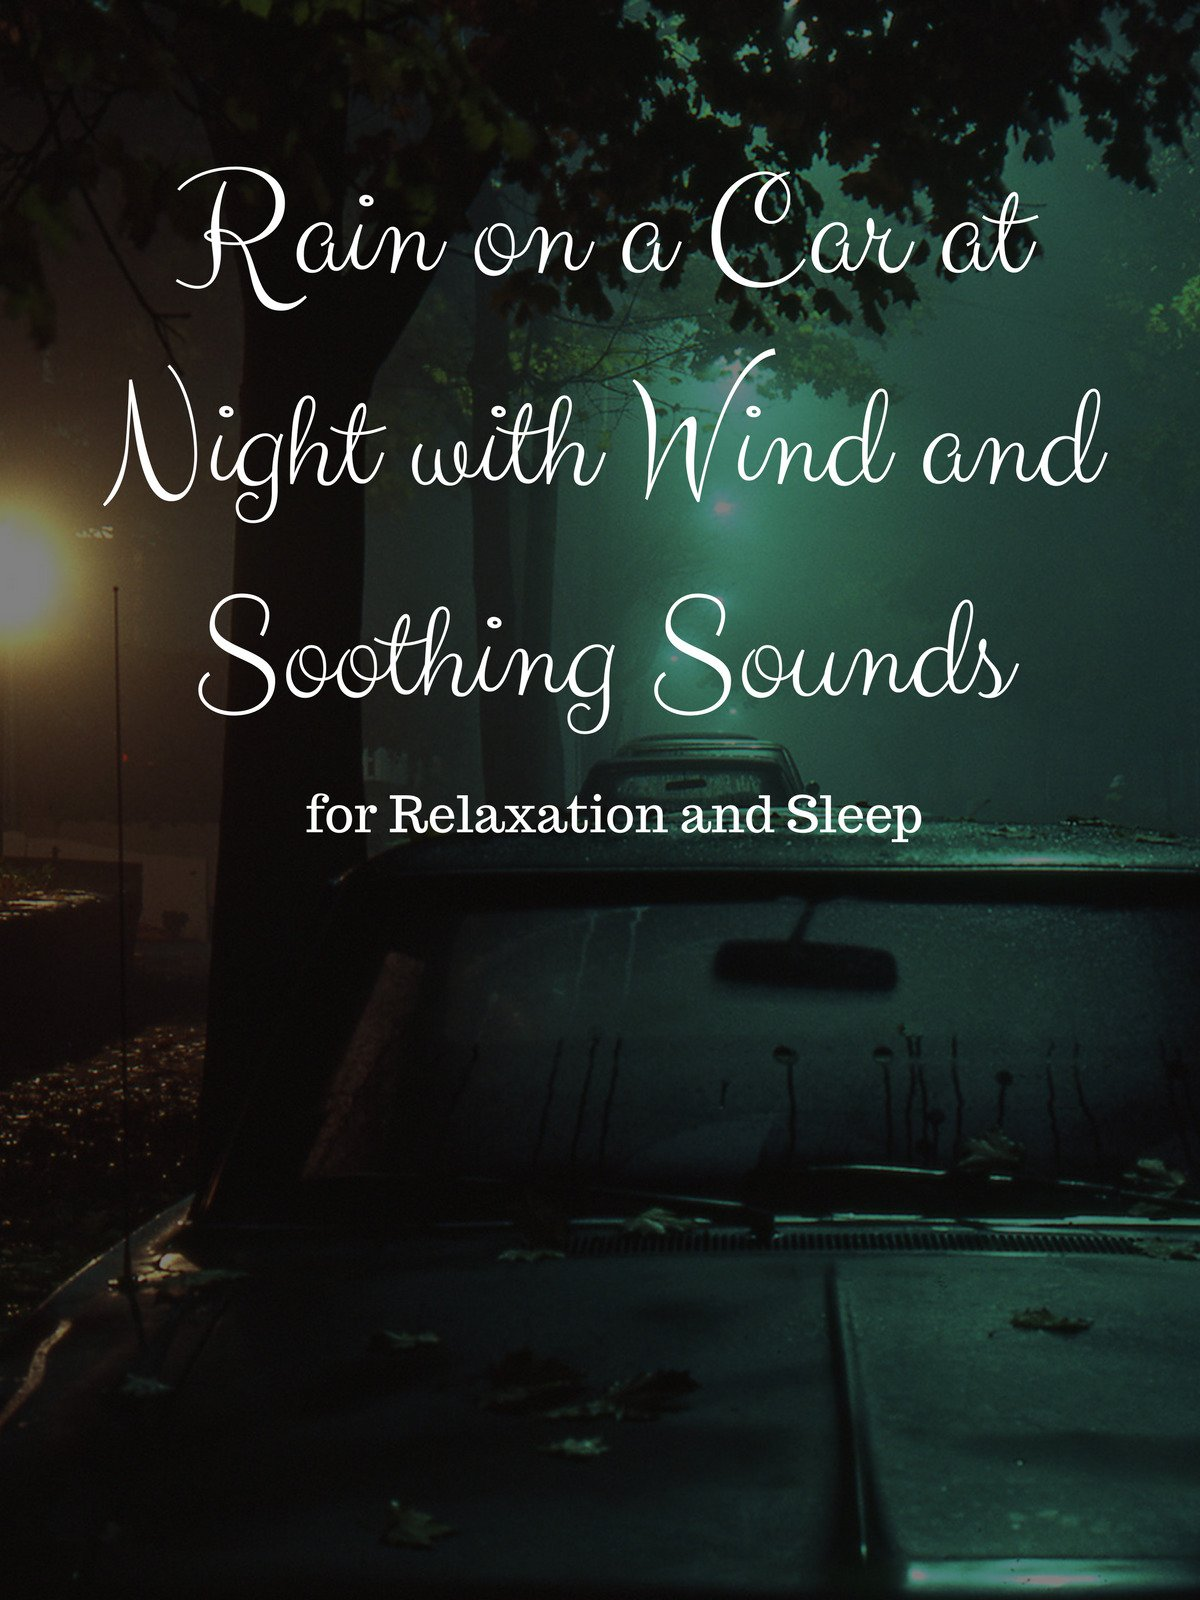 Rain on a Car at Night with Wind and Soothing Sounds for Relaxation and Sleep